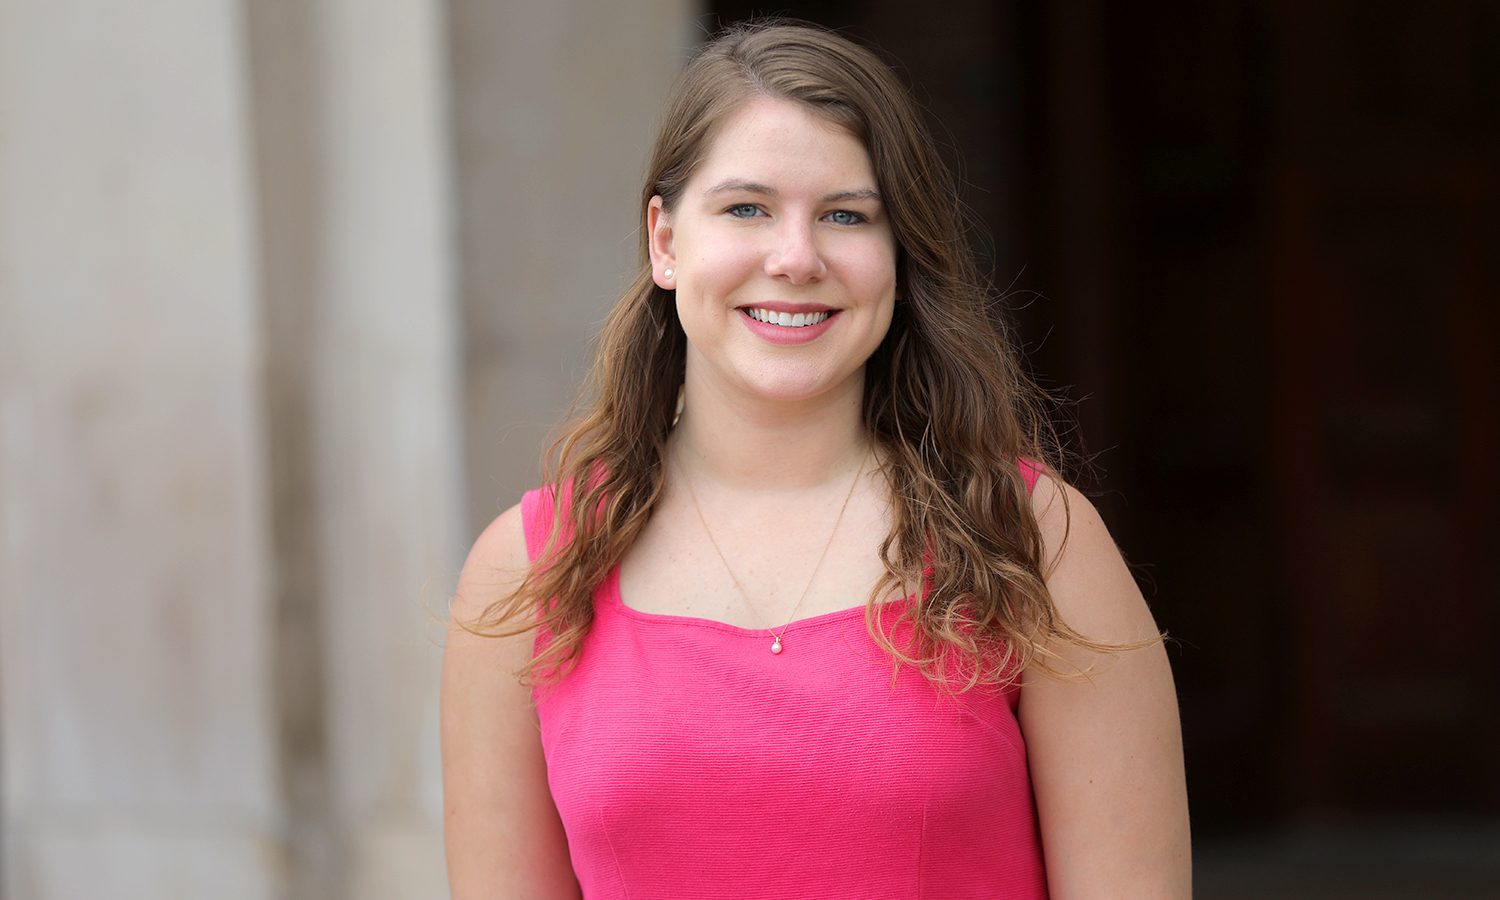 The 2018 William Smith Commencement Class Speaker, Quinn Cullum '18 will head to N.Y.C. this summer to begin her career in financial services at IHS Markit as an associate finance analysist.